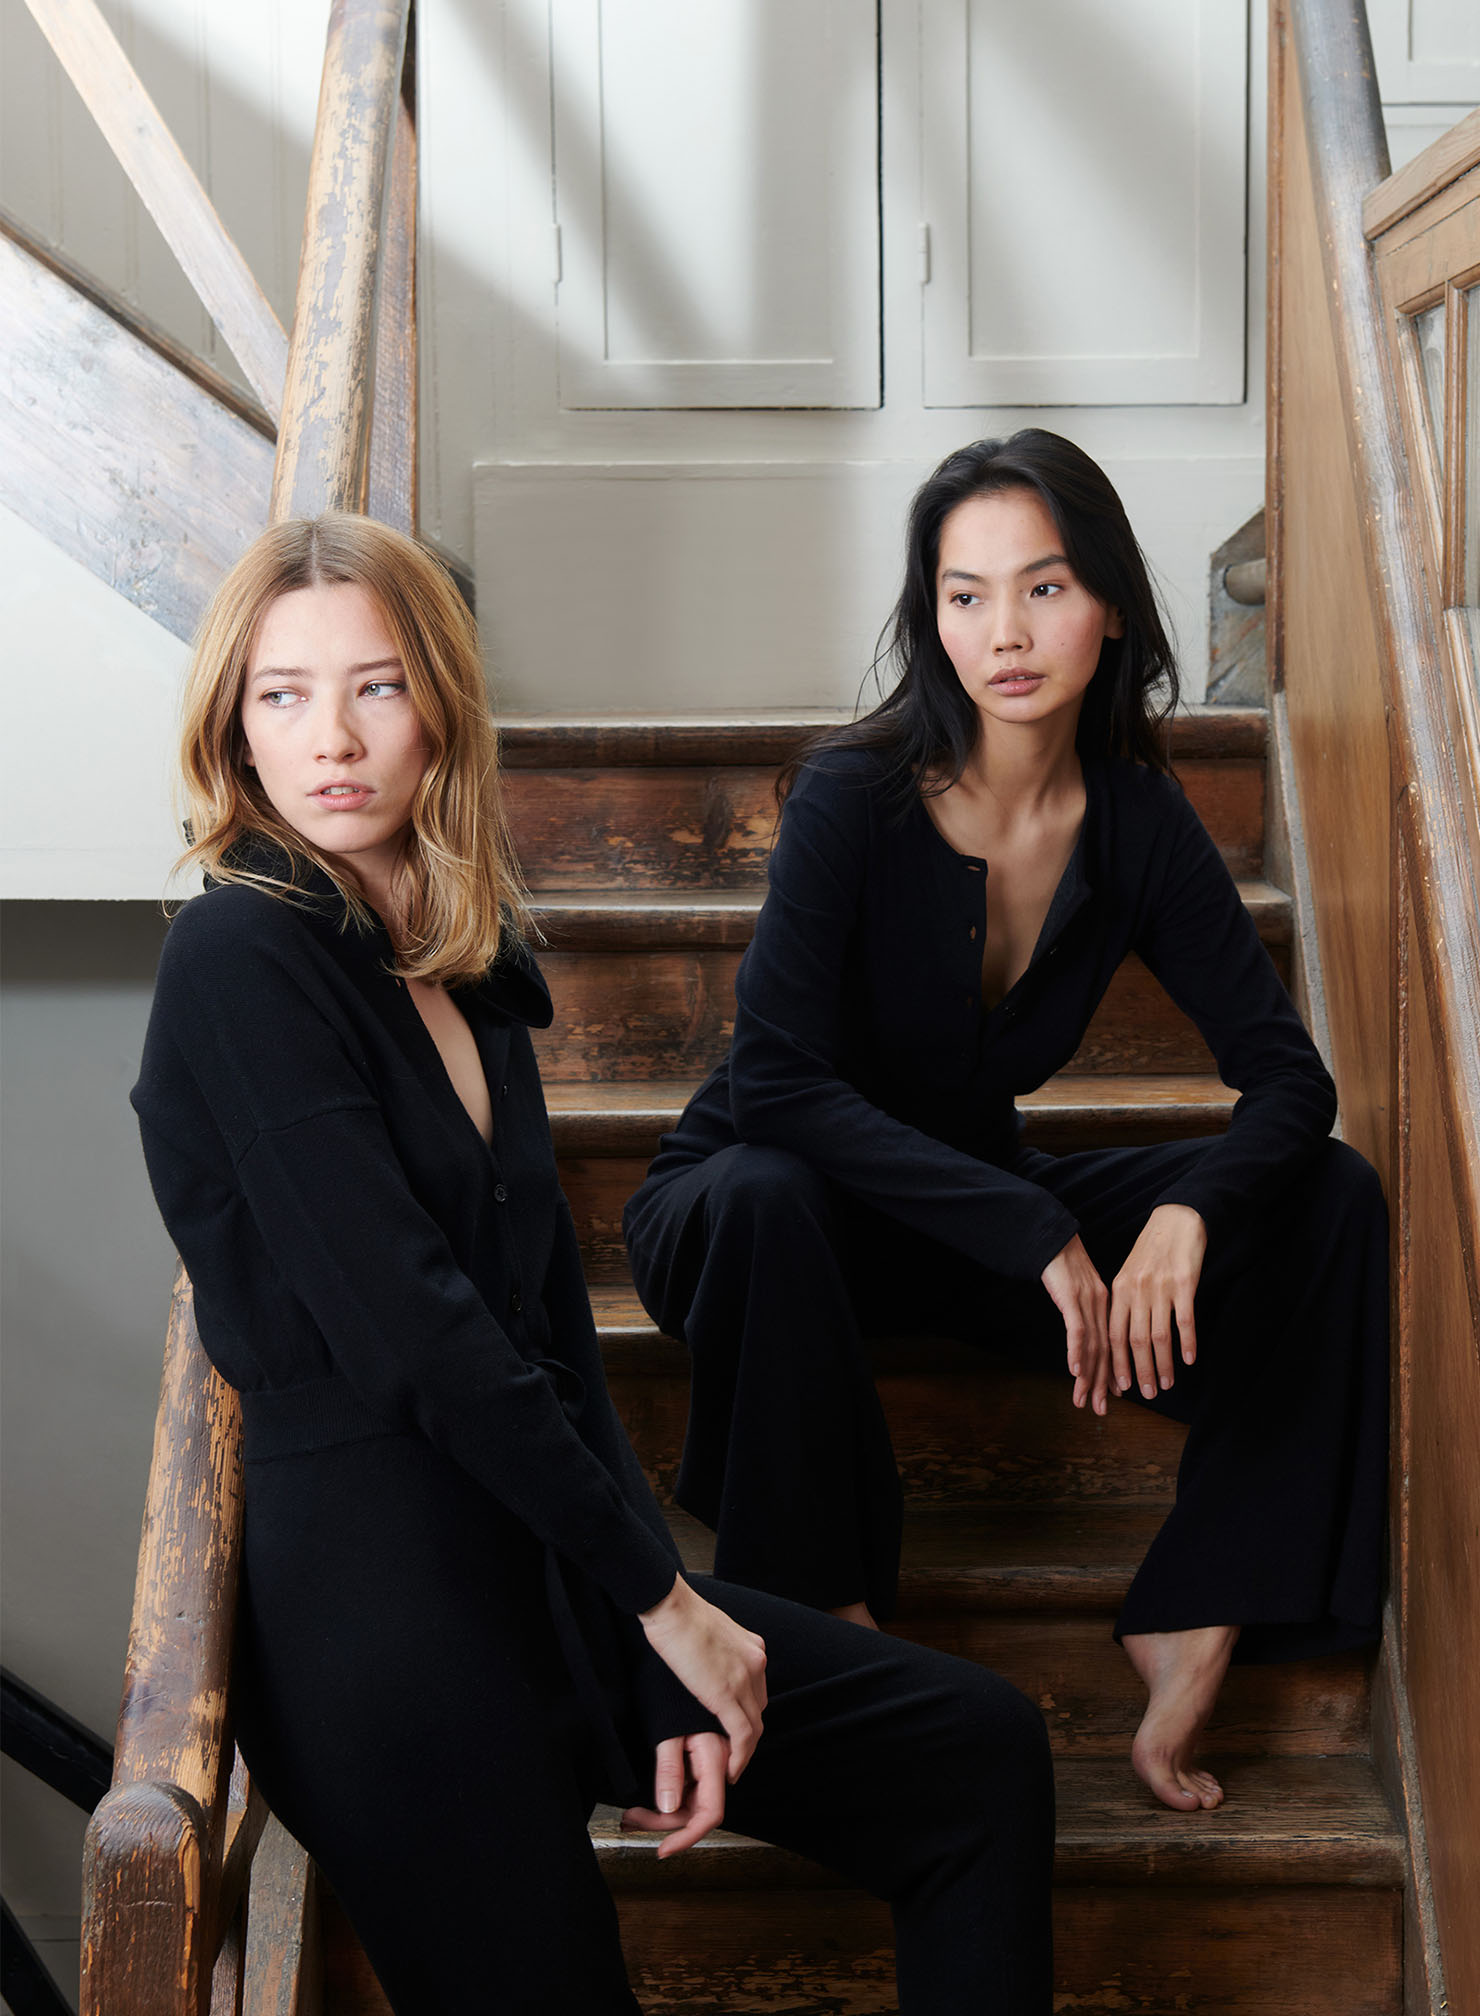 Look E21 - SWEAT TIE & DYE